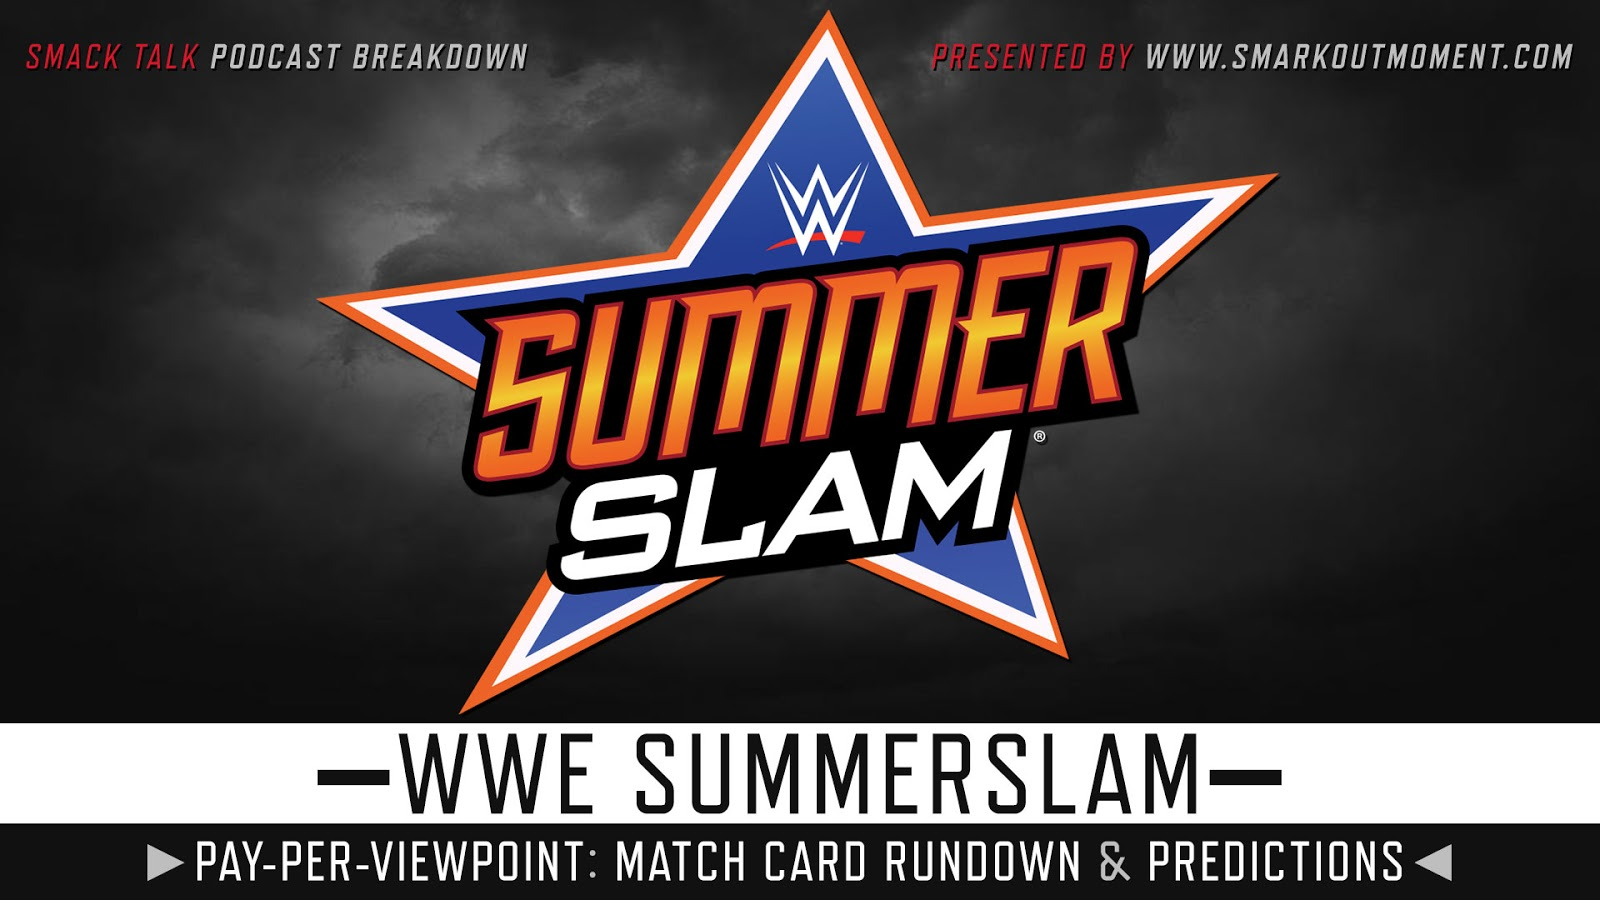 WWE SummerSlam 2018 spoilers podcast